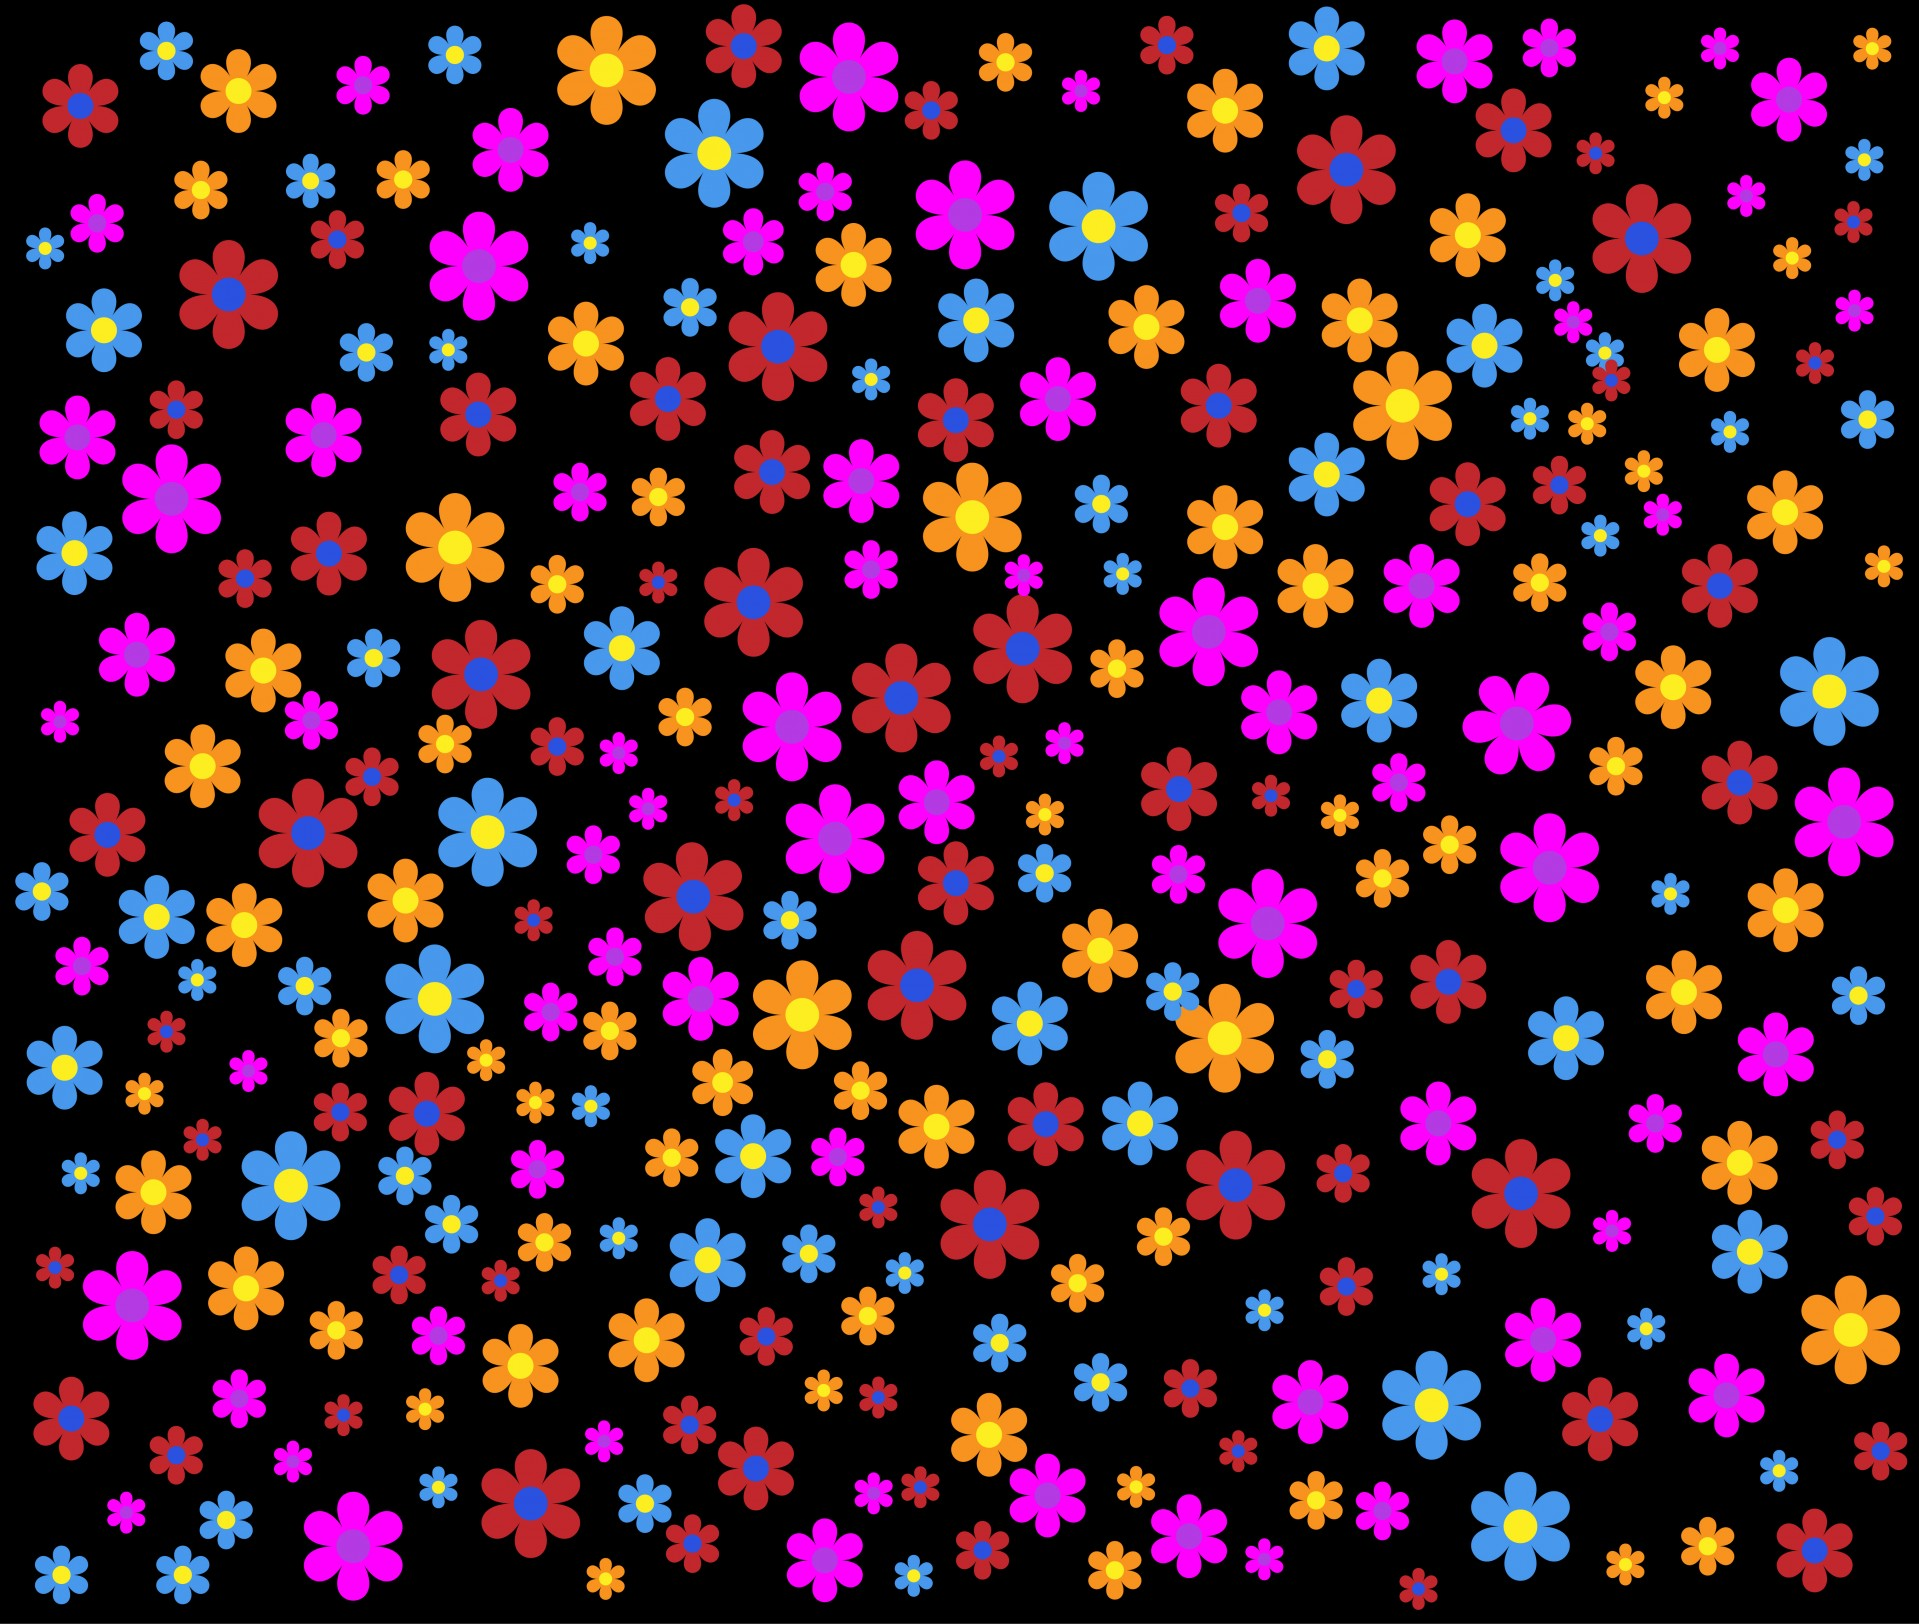 Black And Yellow Wallpaper Floral Background Wallpaper Free Stock Photo Public